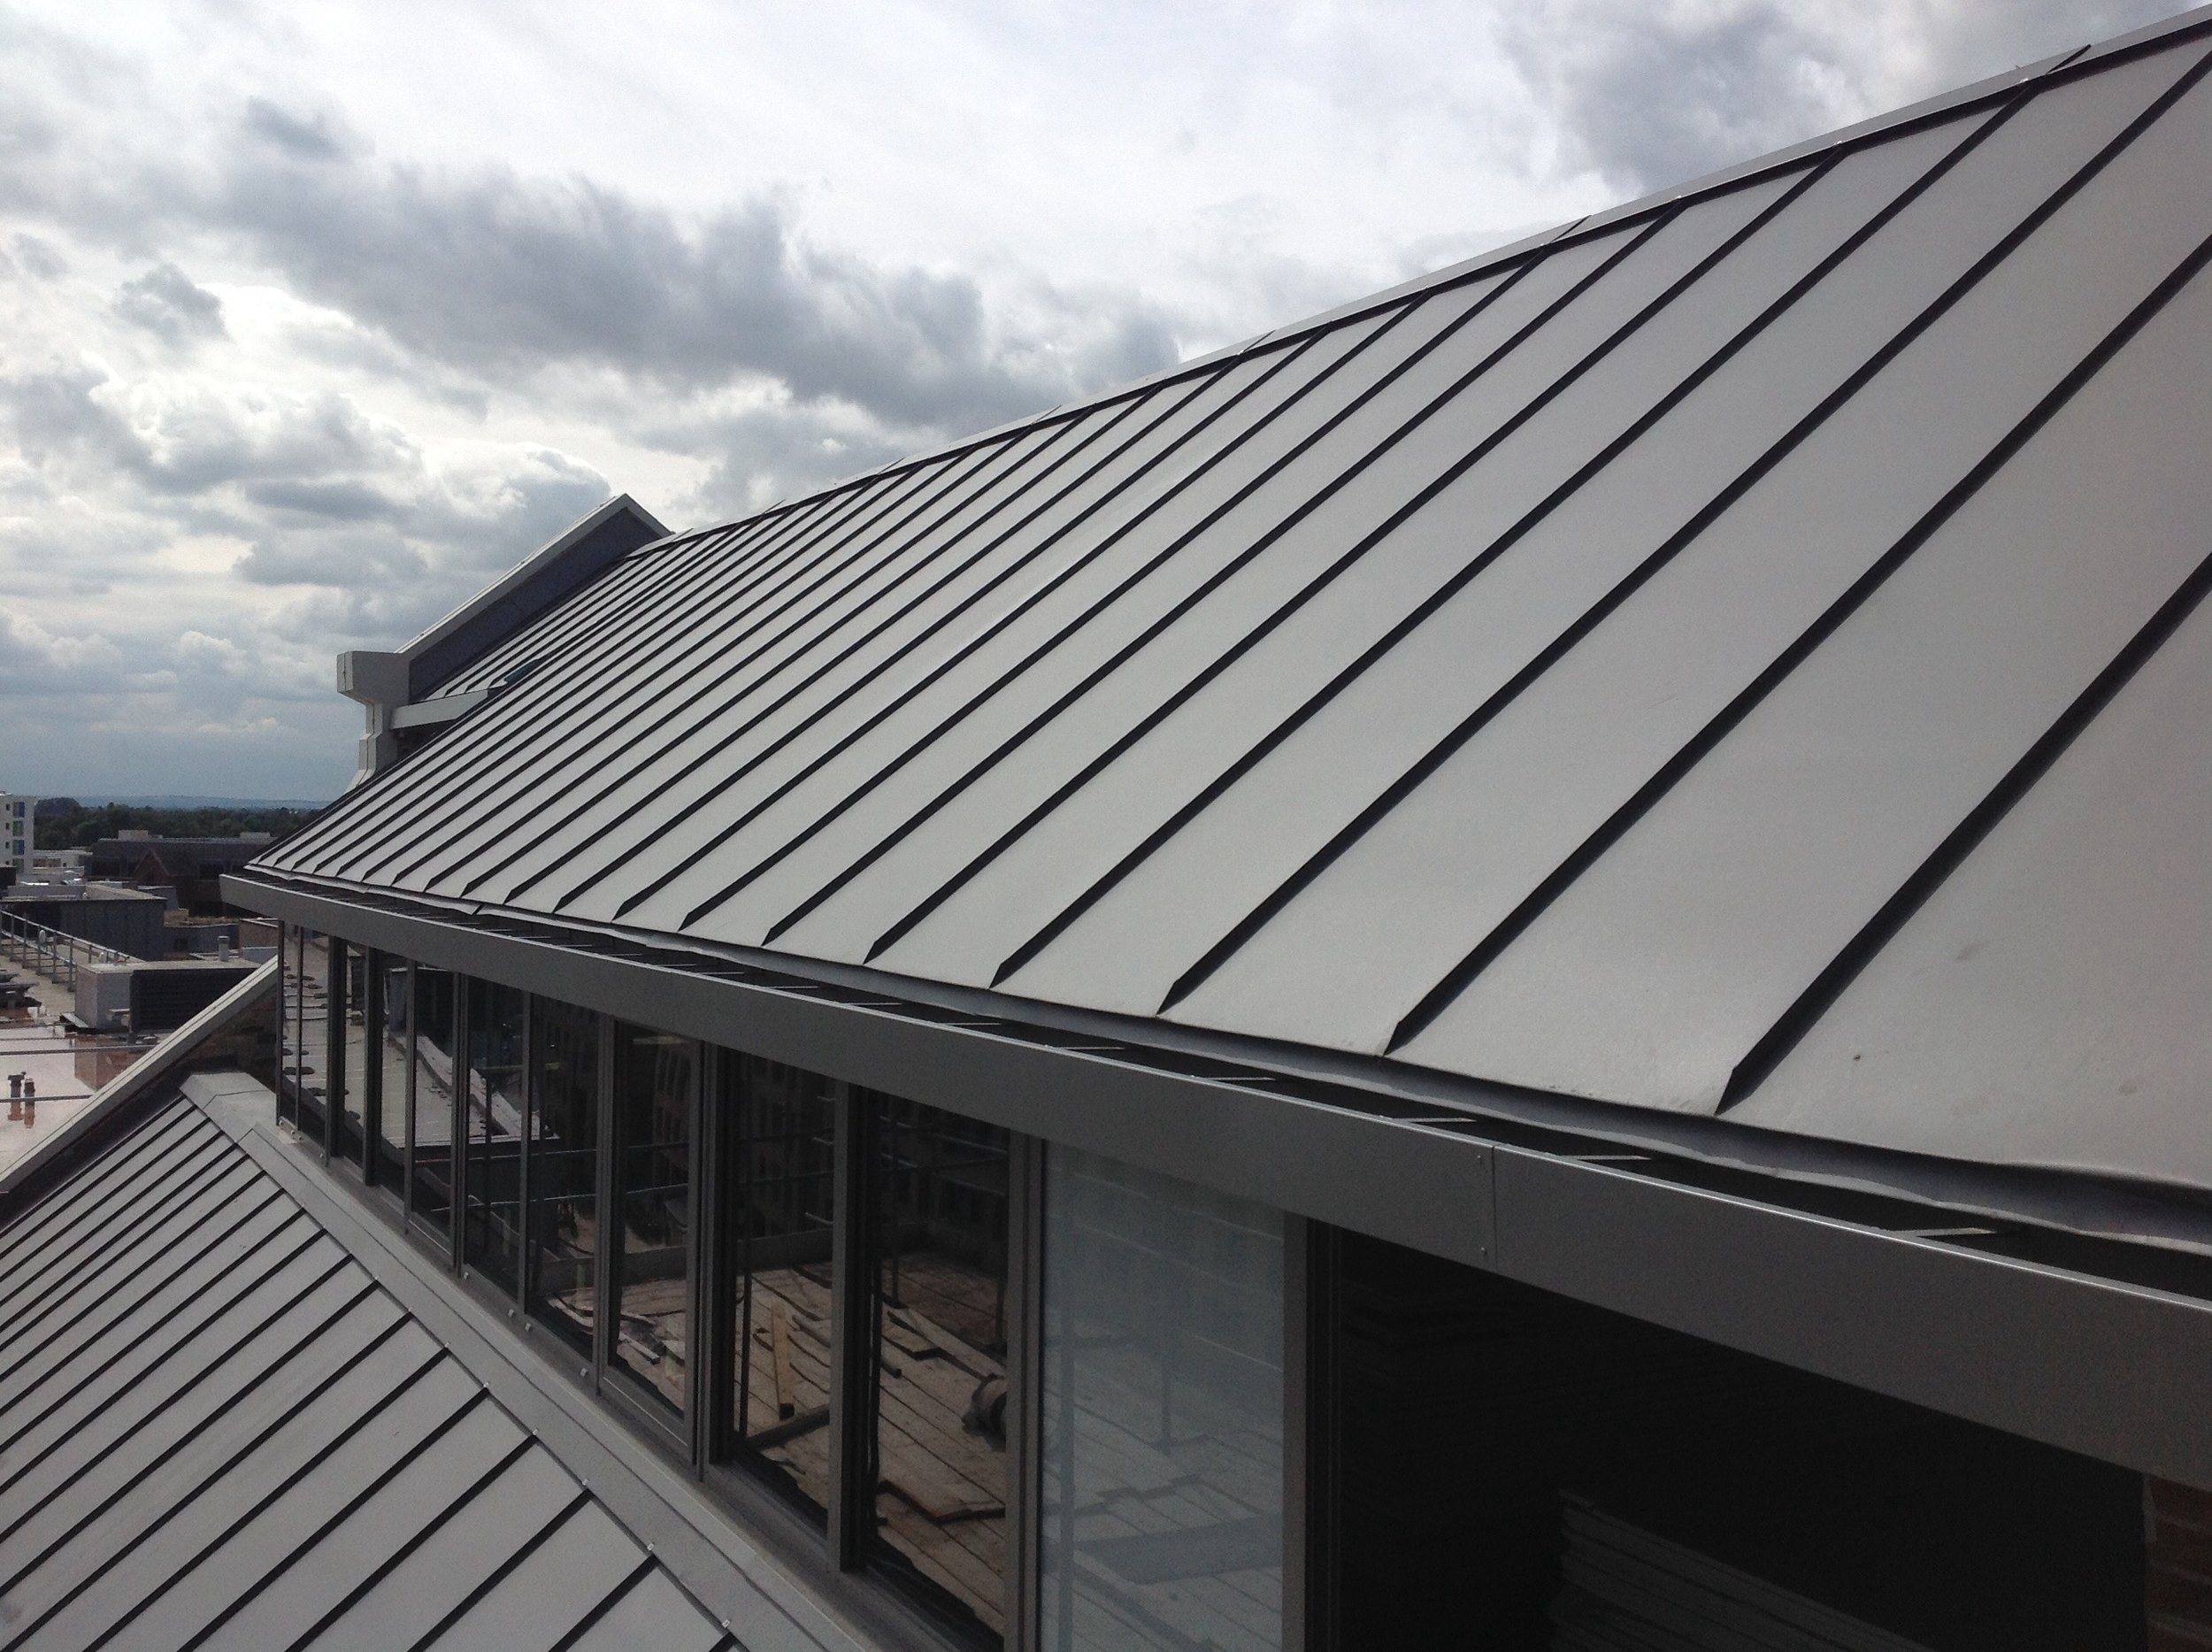 Distinctive appearance - Whether you're an architect, specifier, developer or home owner, GreenCoat PLX will ensure your project stands apart …… market-leading material warranties, simple and straight-forward installation details which are supplied to your experienced metal roofer, all help ensure you achieve a great finish to your roof or façade.